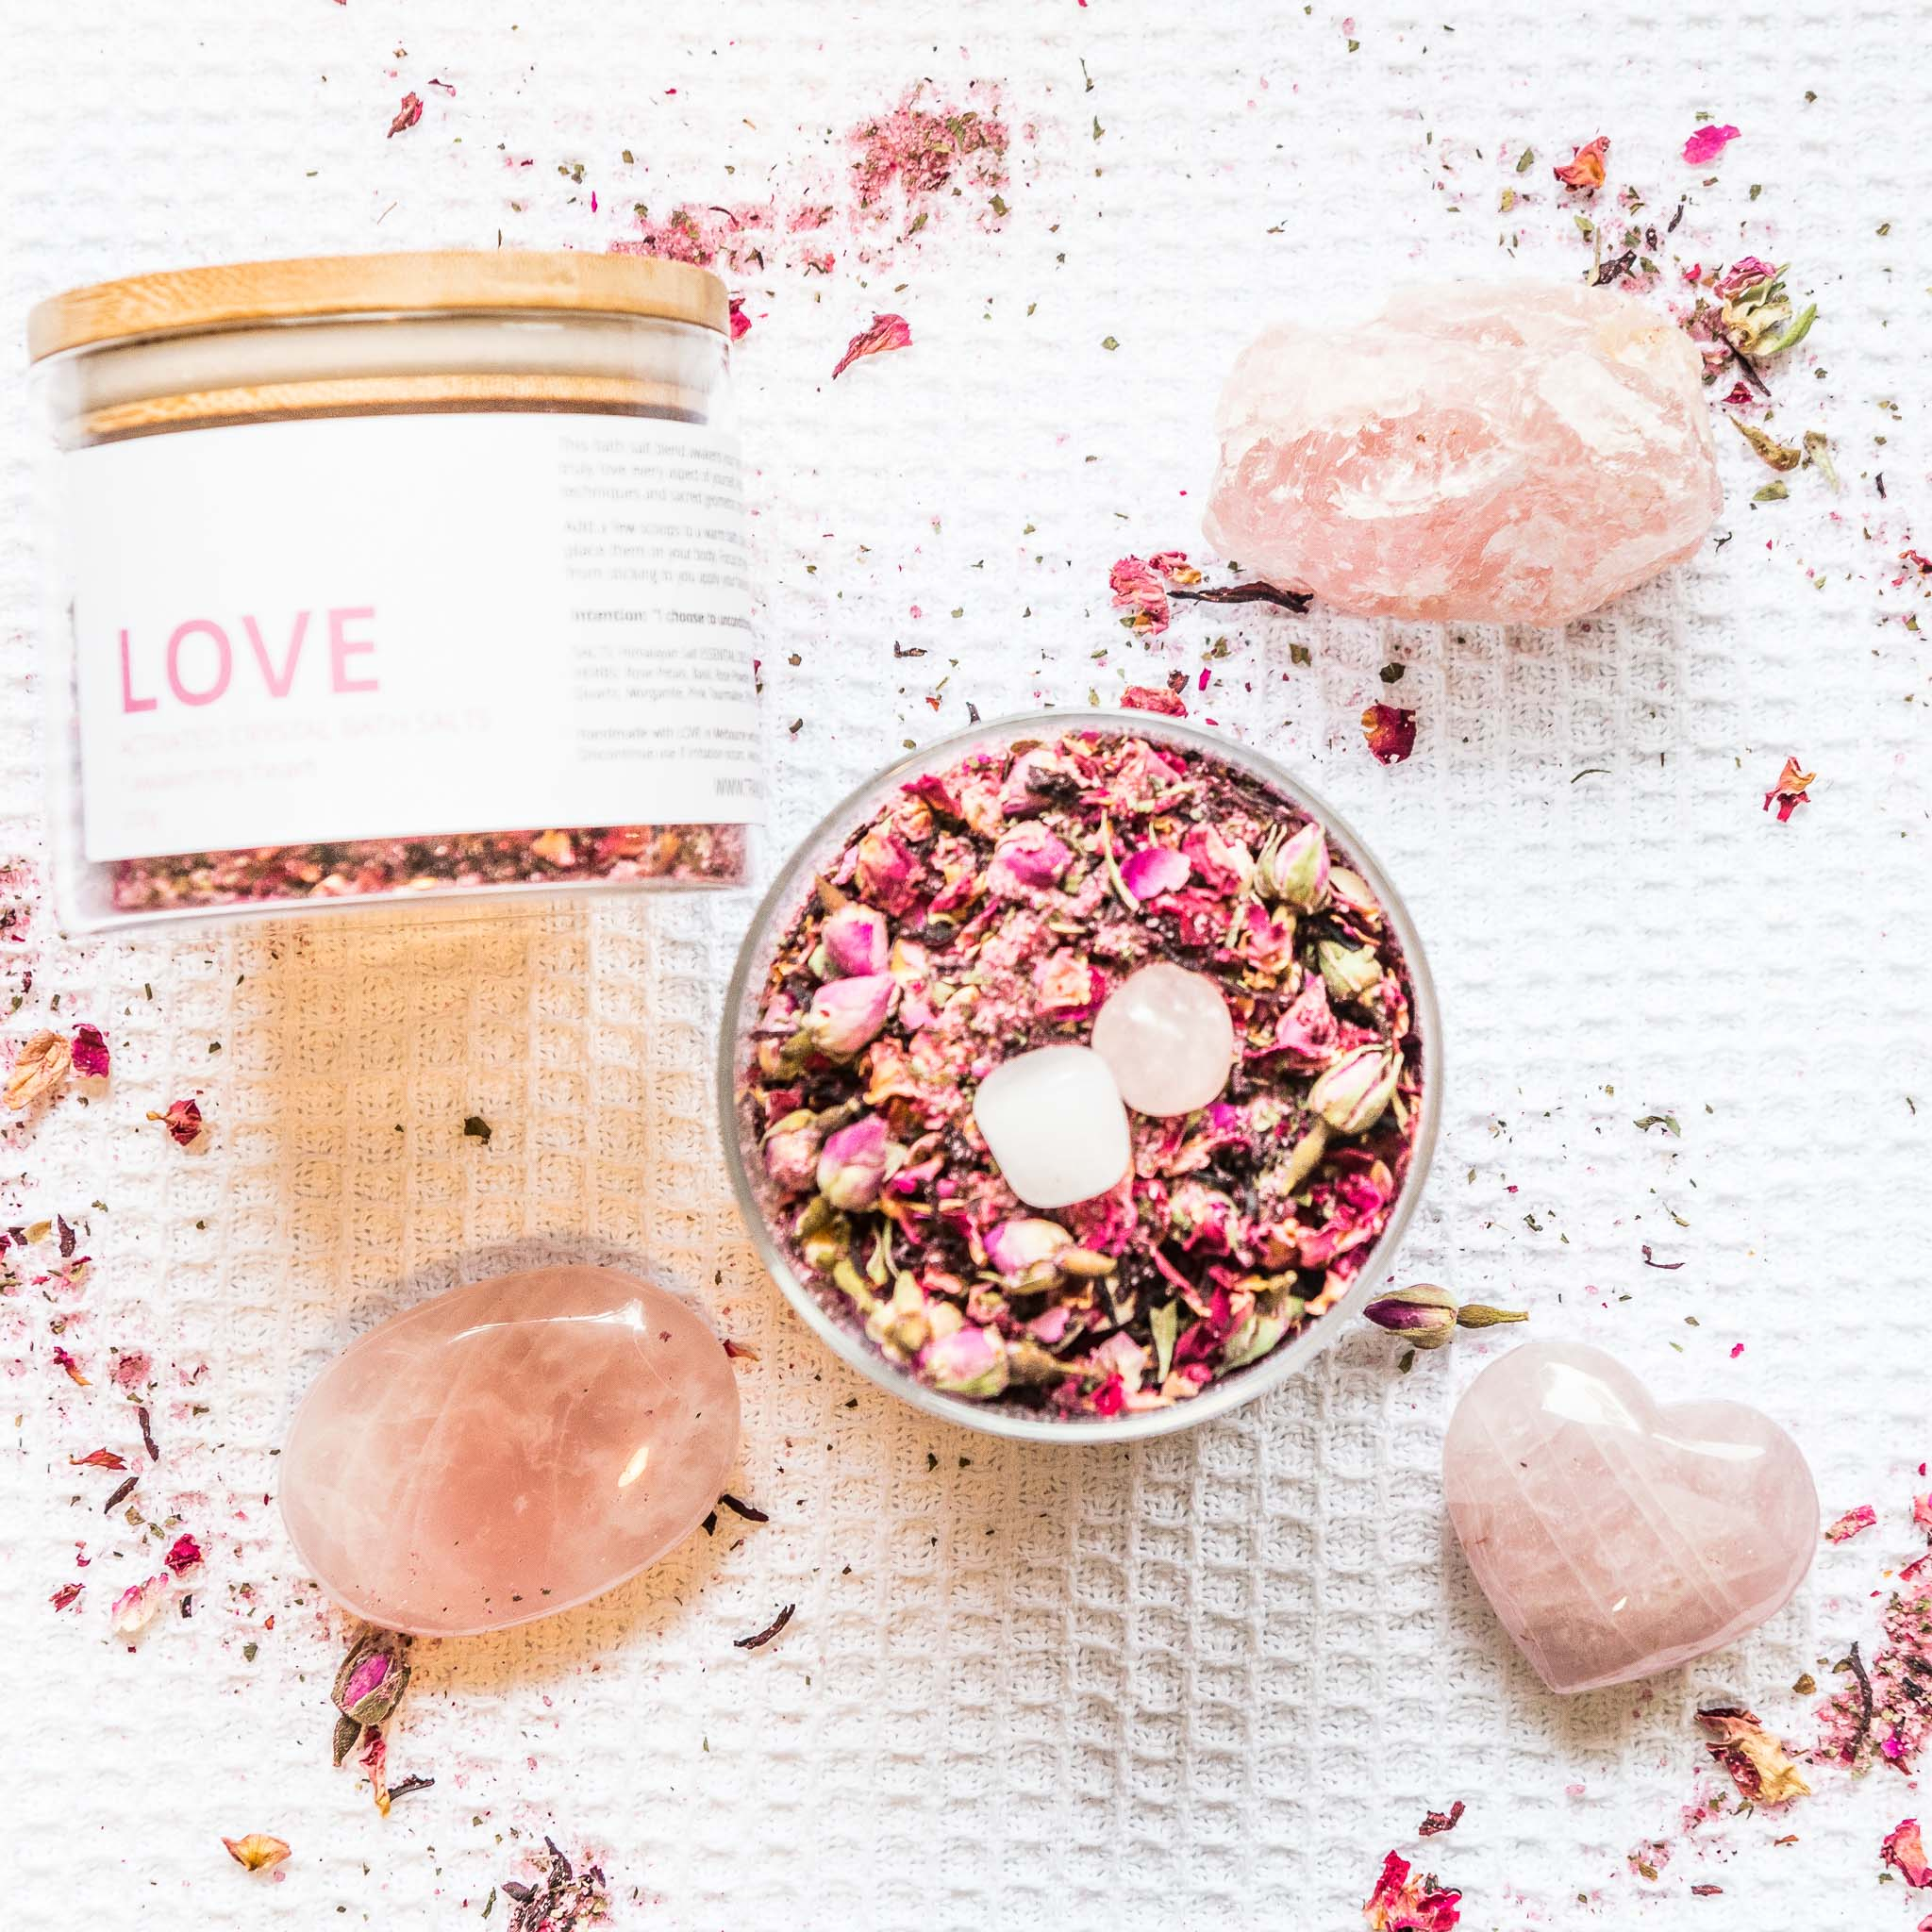 LOVE - Activated Crystal Bath Salt Blend